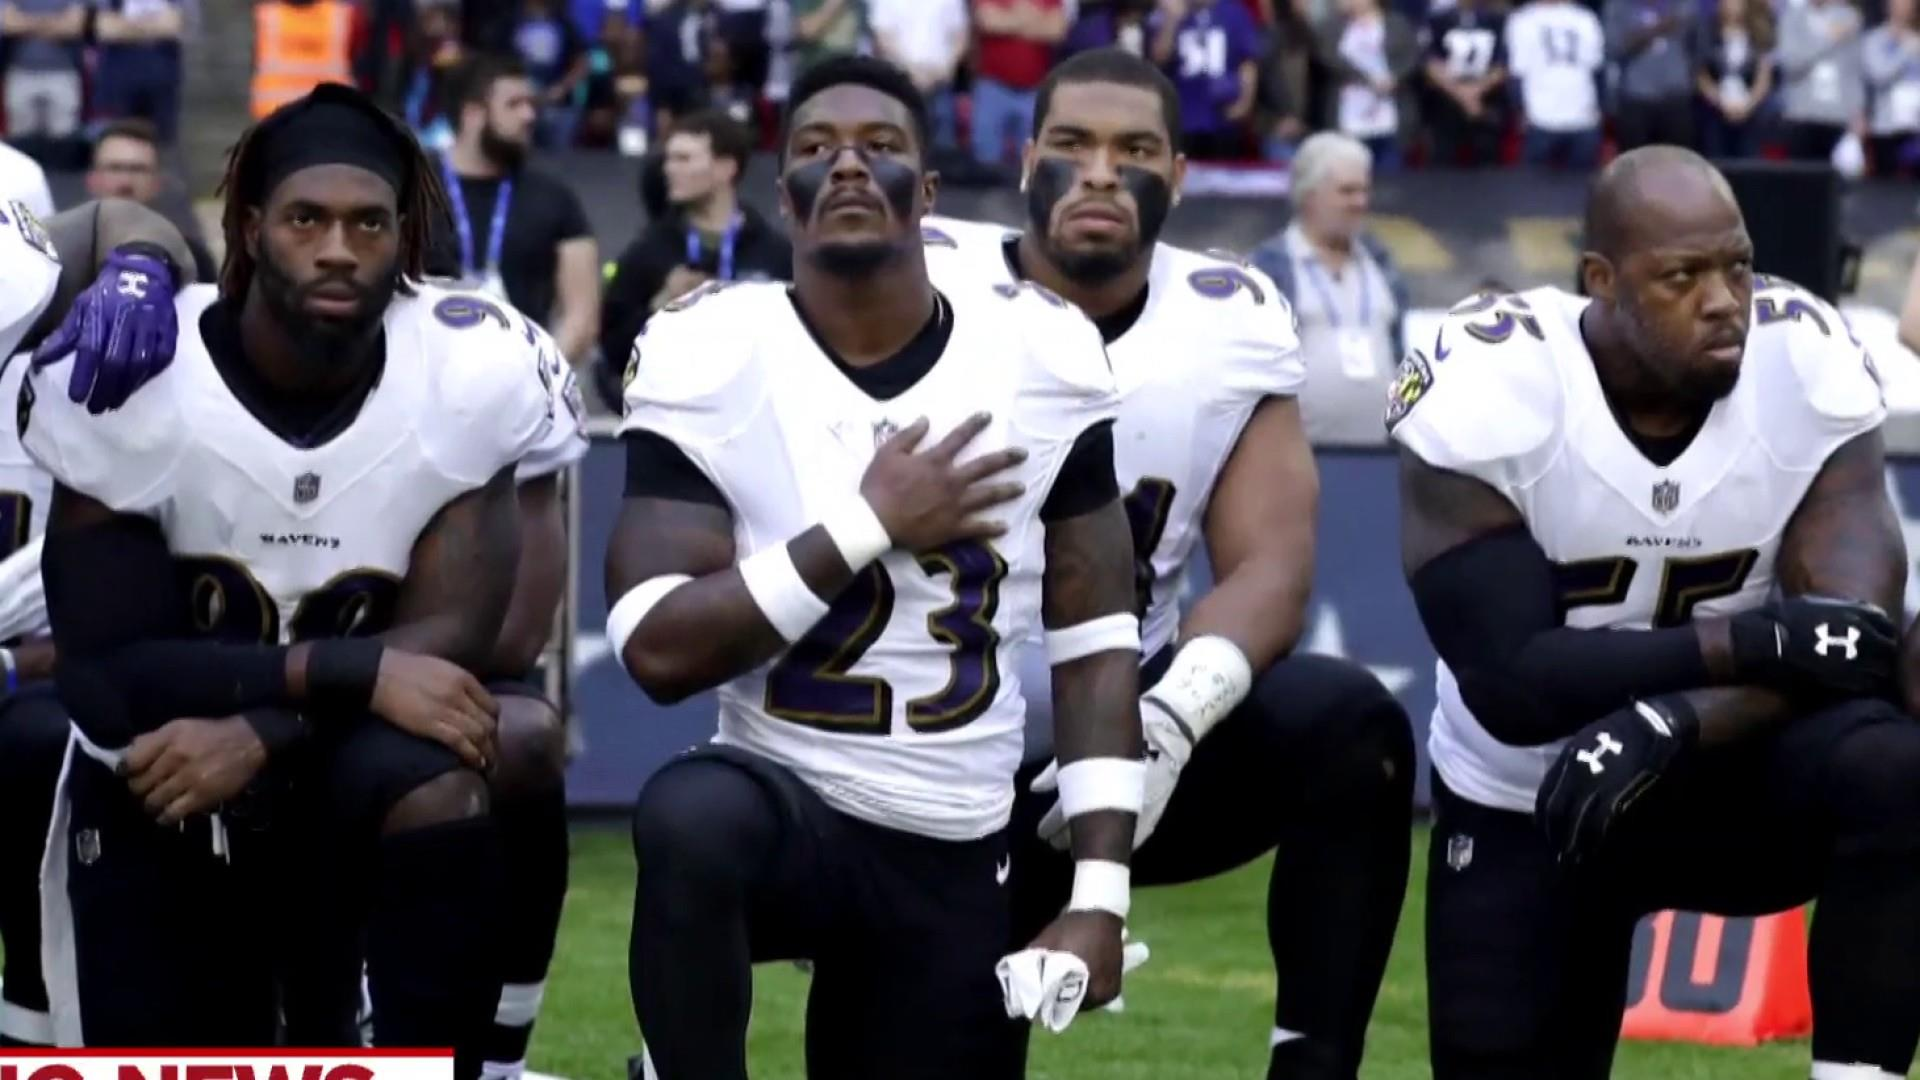 Has the NFL become the 'No Freedom League'?